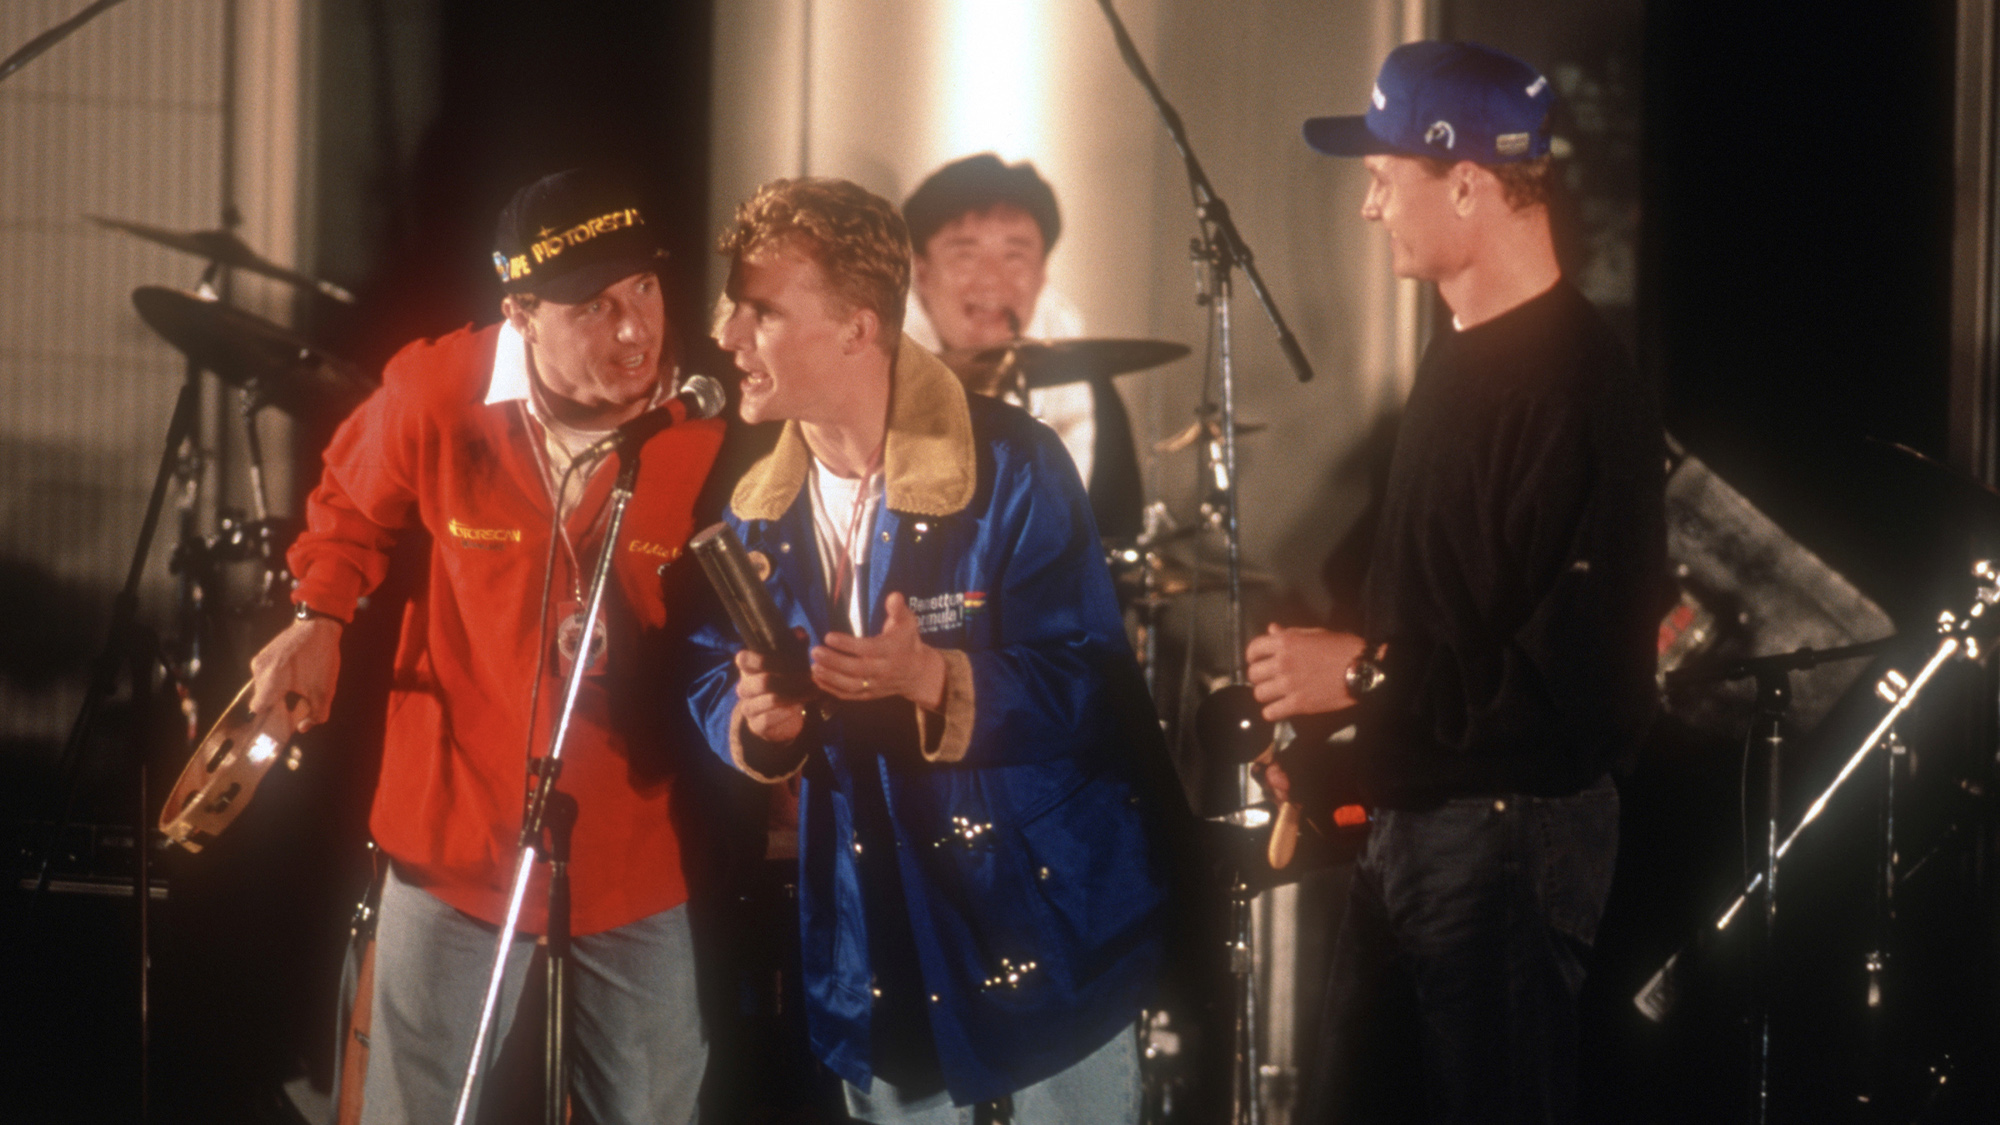 Eddie Irvine Johnny Herbert and David Coulthard on stage in concert after the 1995 British Grand Prix at Silverstone